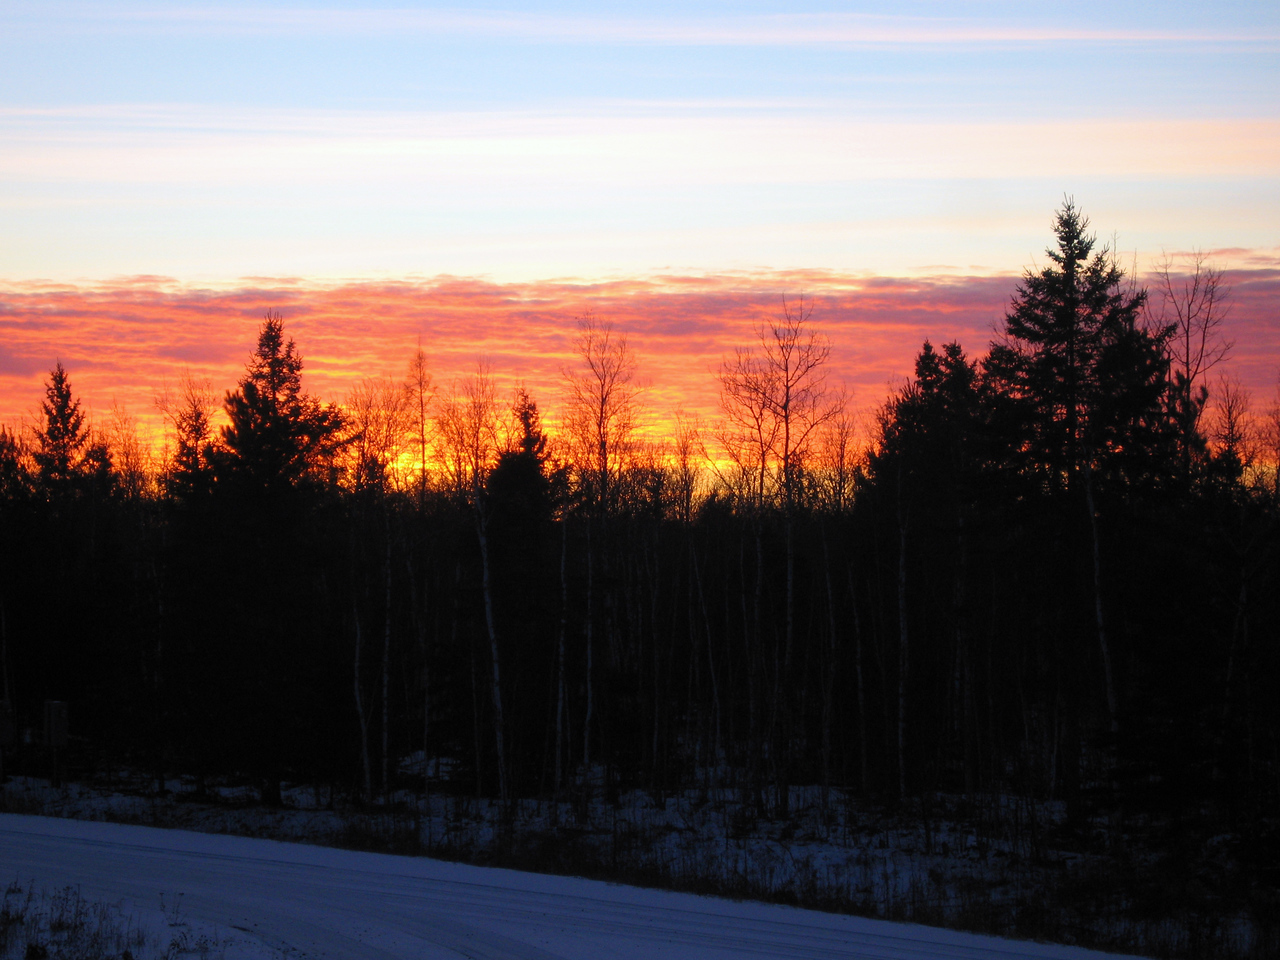 Northwoods Sky on Fire